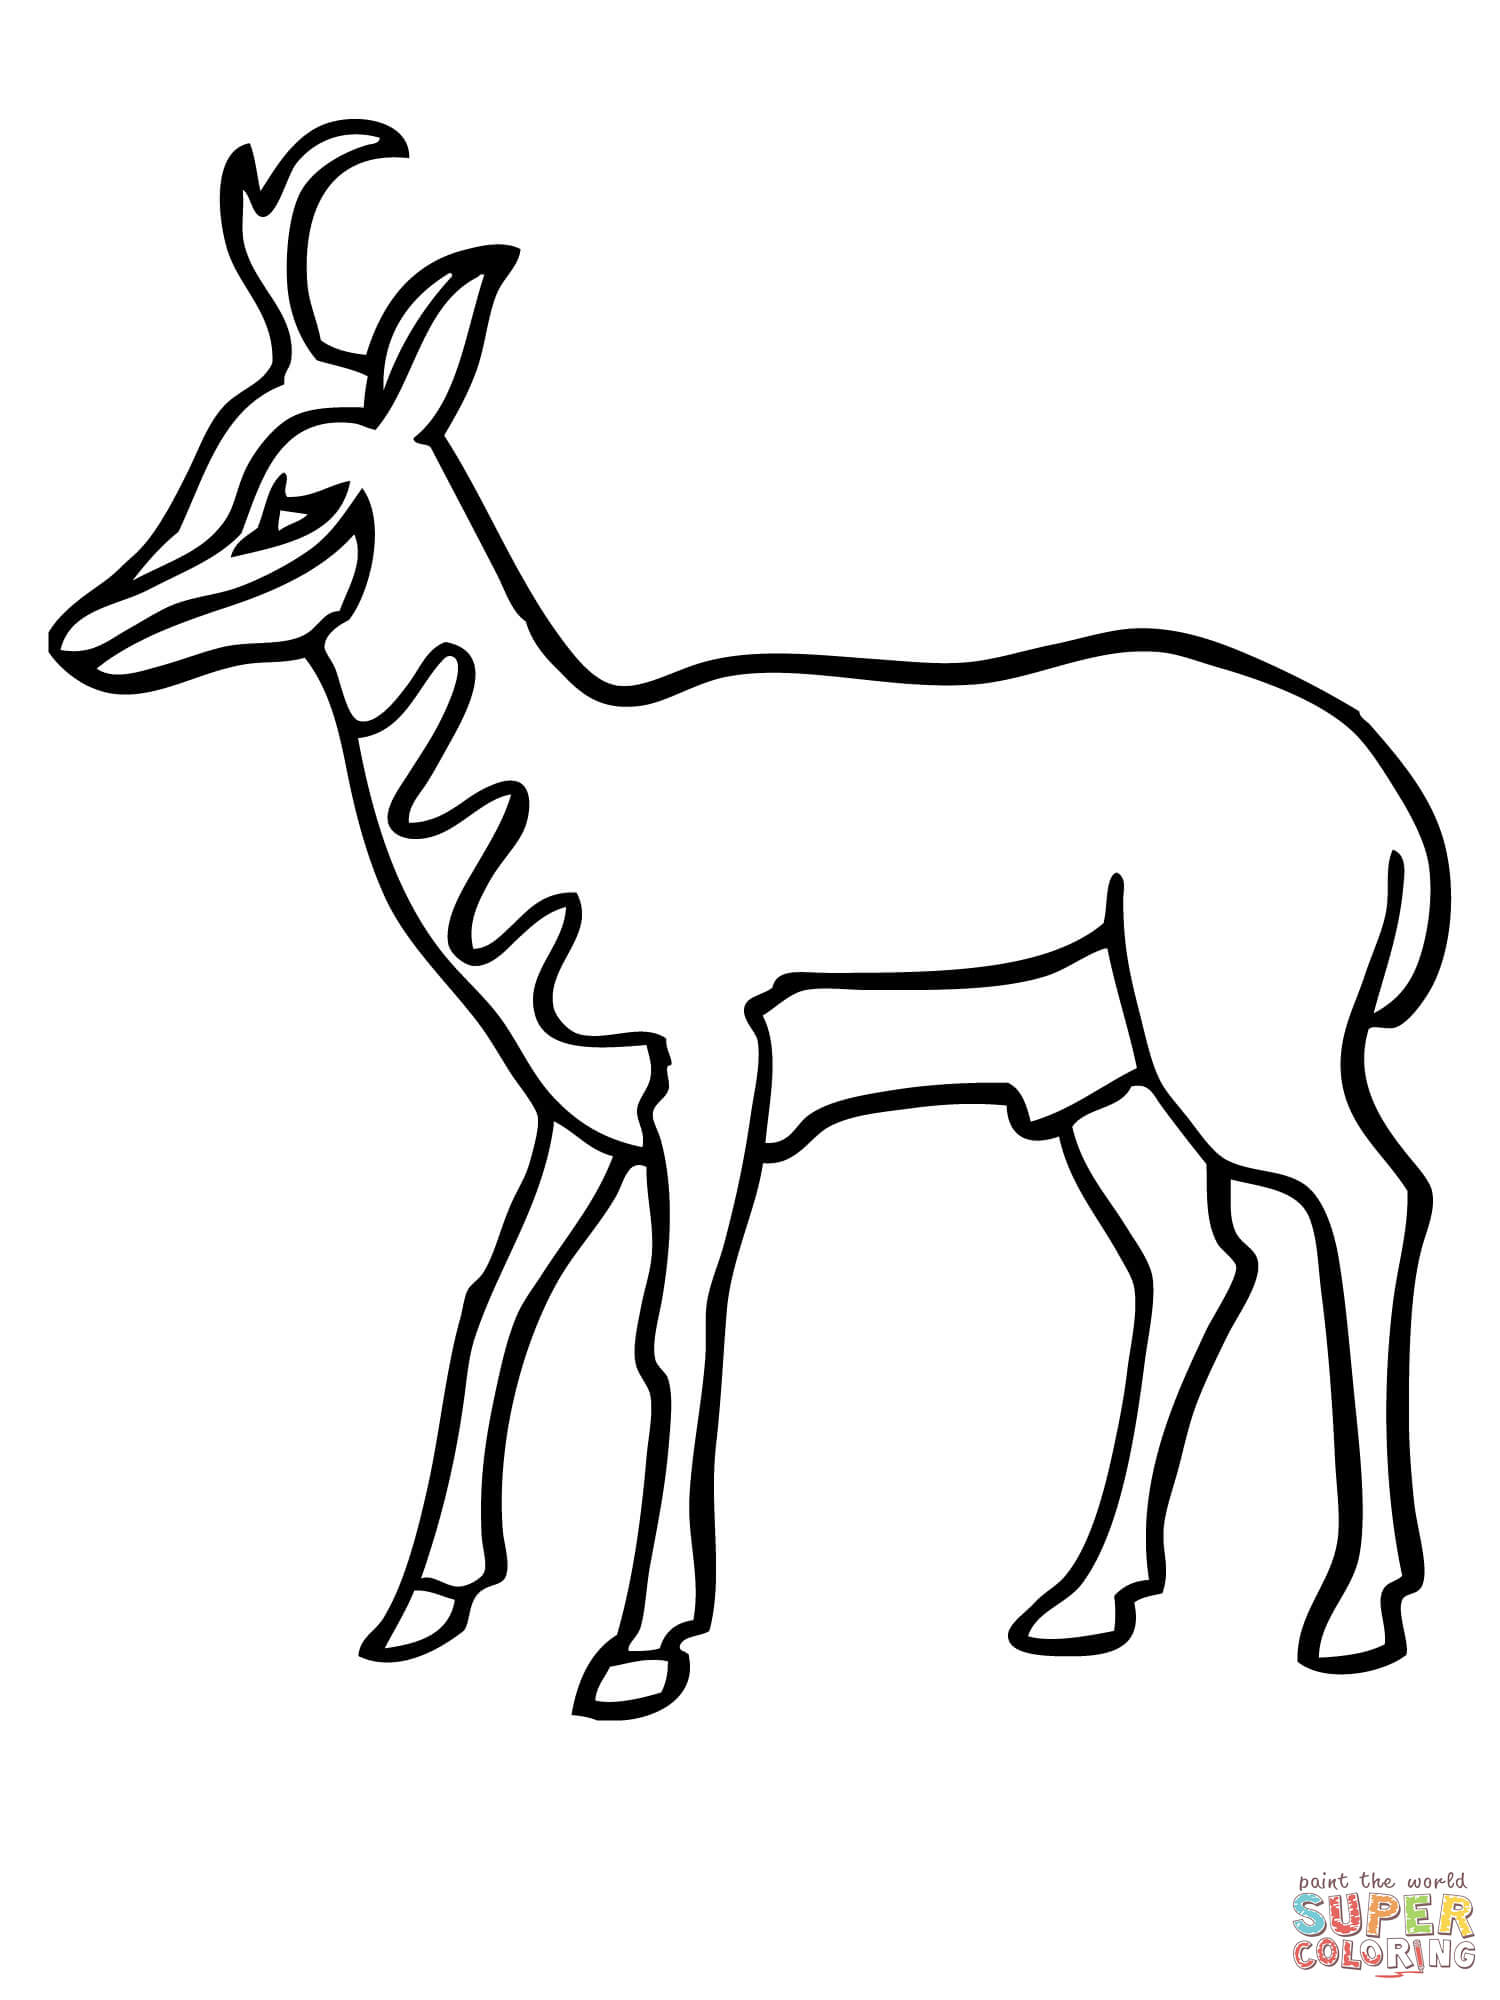 Pronghorn Antelope clipart Printable page the Pronghorn Click